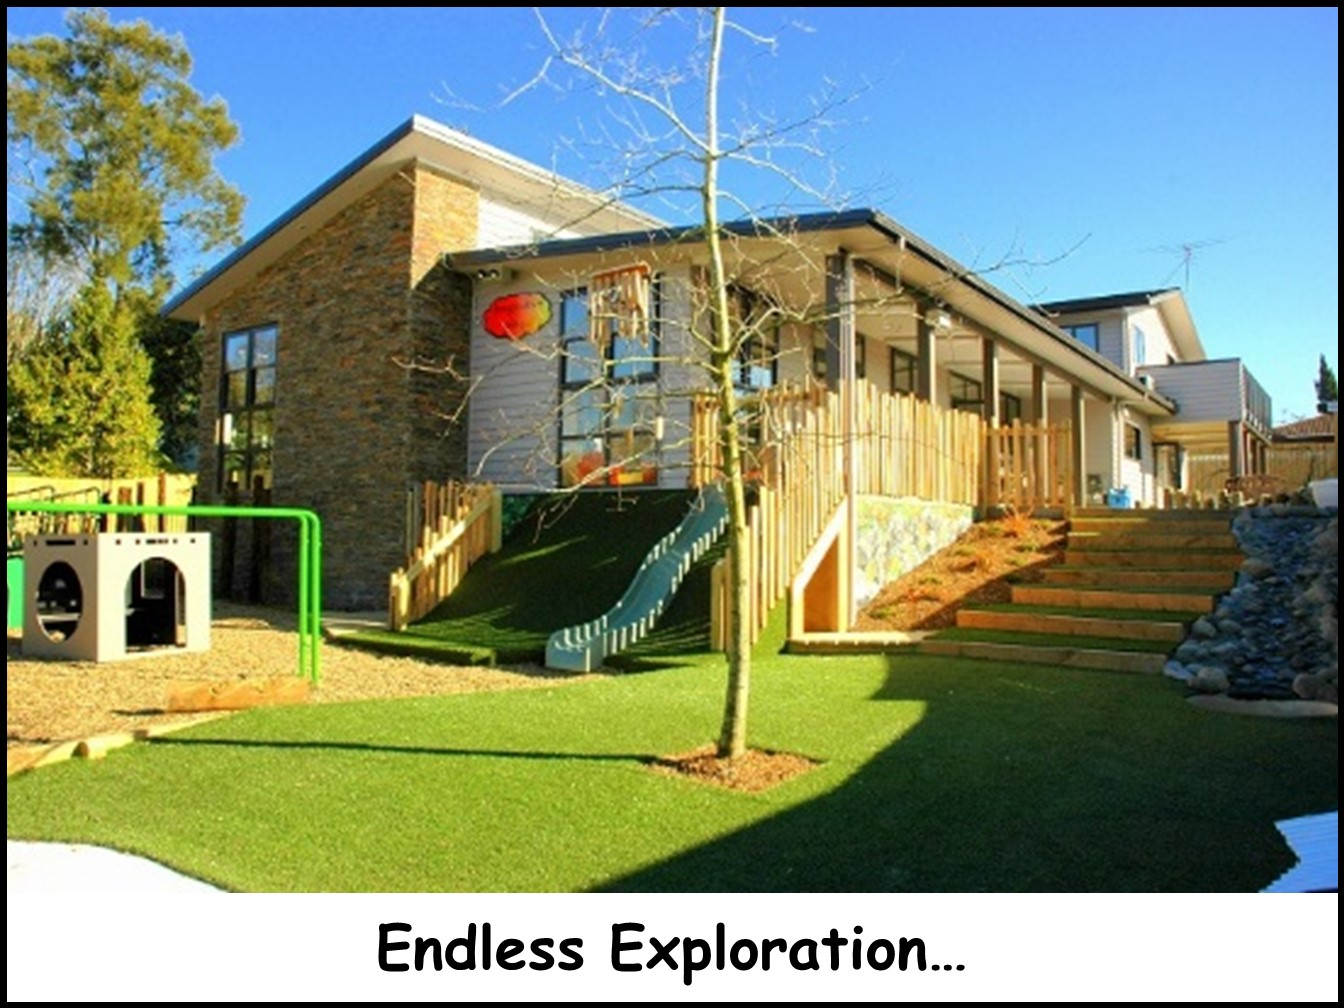 Childcare with a big playground that is all about children and seeing their discoveries & learning evolve near New Lynn, New Windsor, Sandringham, Mt Roskill, Mt Albert, Three Kings, Lynfield, Green Bay, Royal Oak, Hillsborough, Huia, Owairaka, Titirangi, Blockhouse Bay, Laingholm